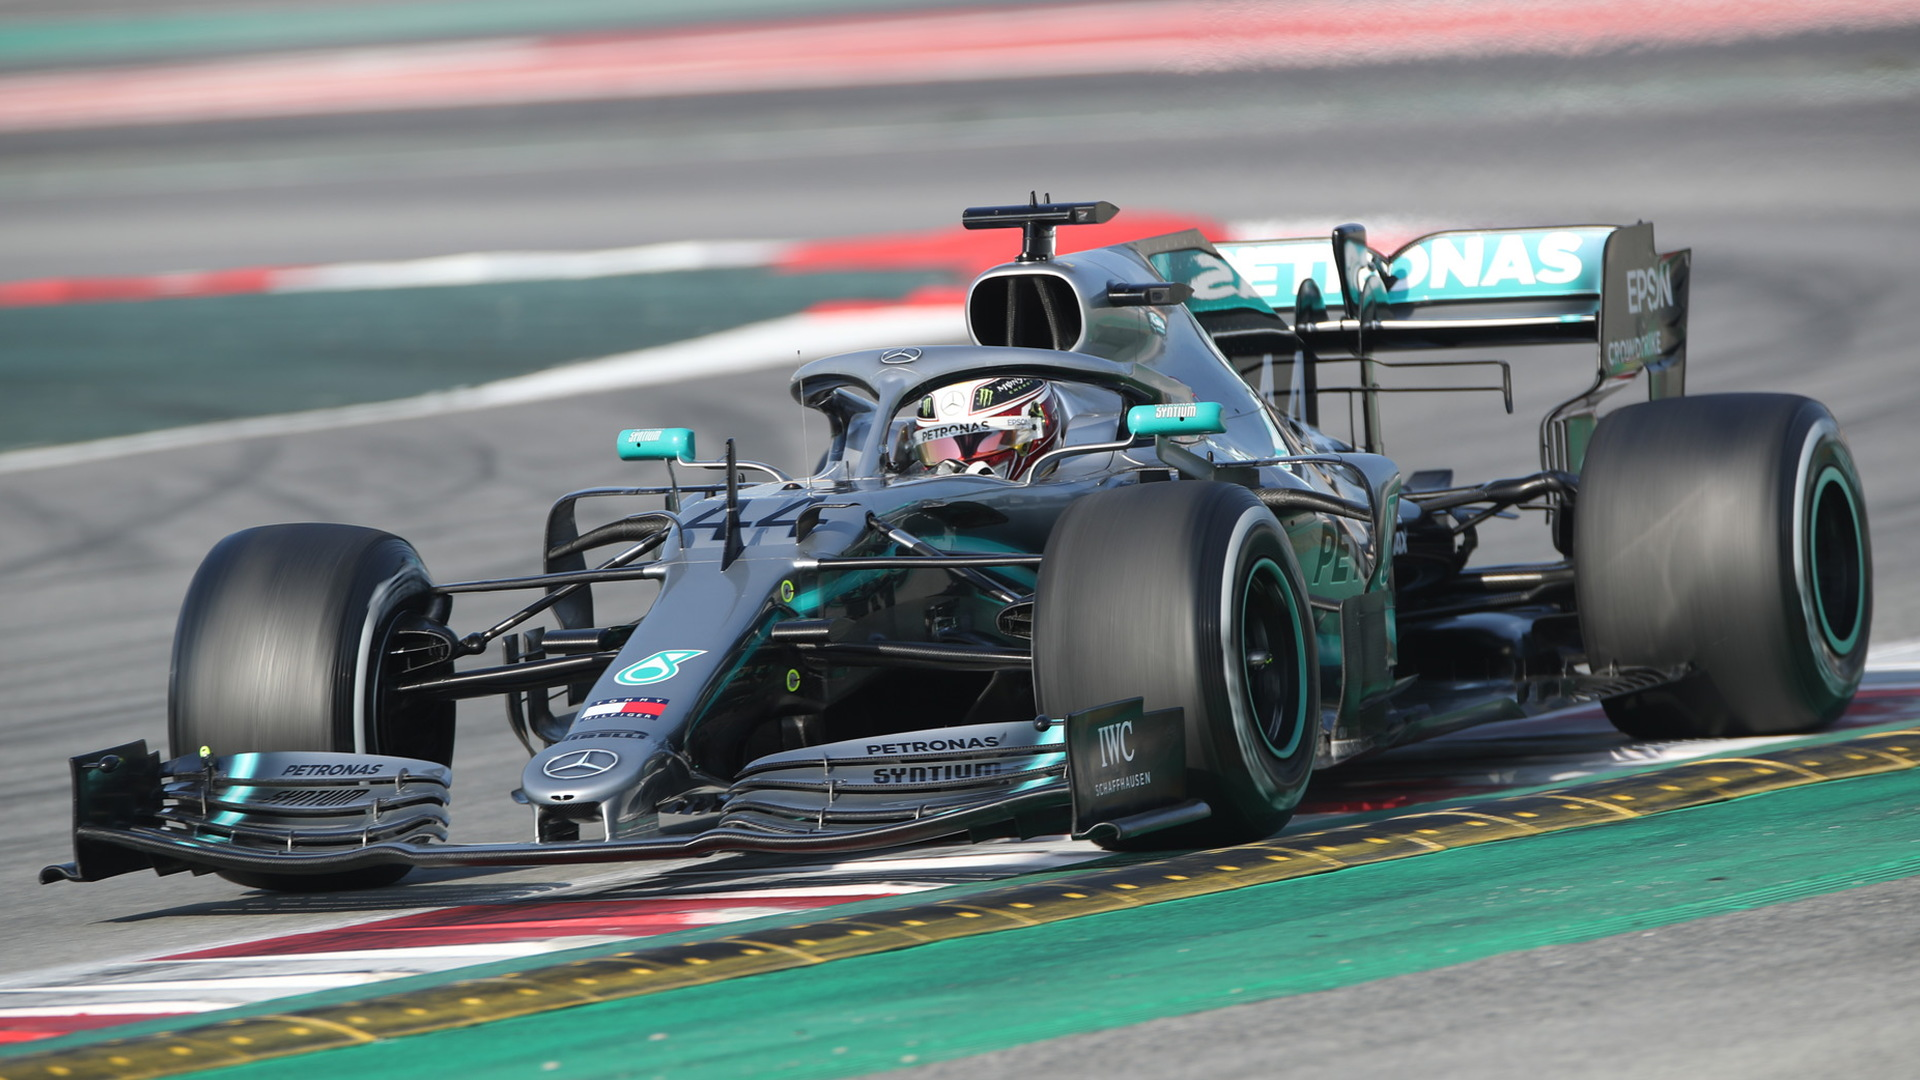 Mercedes-AMG's Lewis Hamilton during testing for the 2019 Formula 1 World Championship